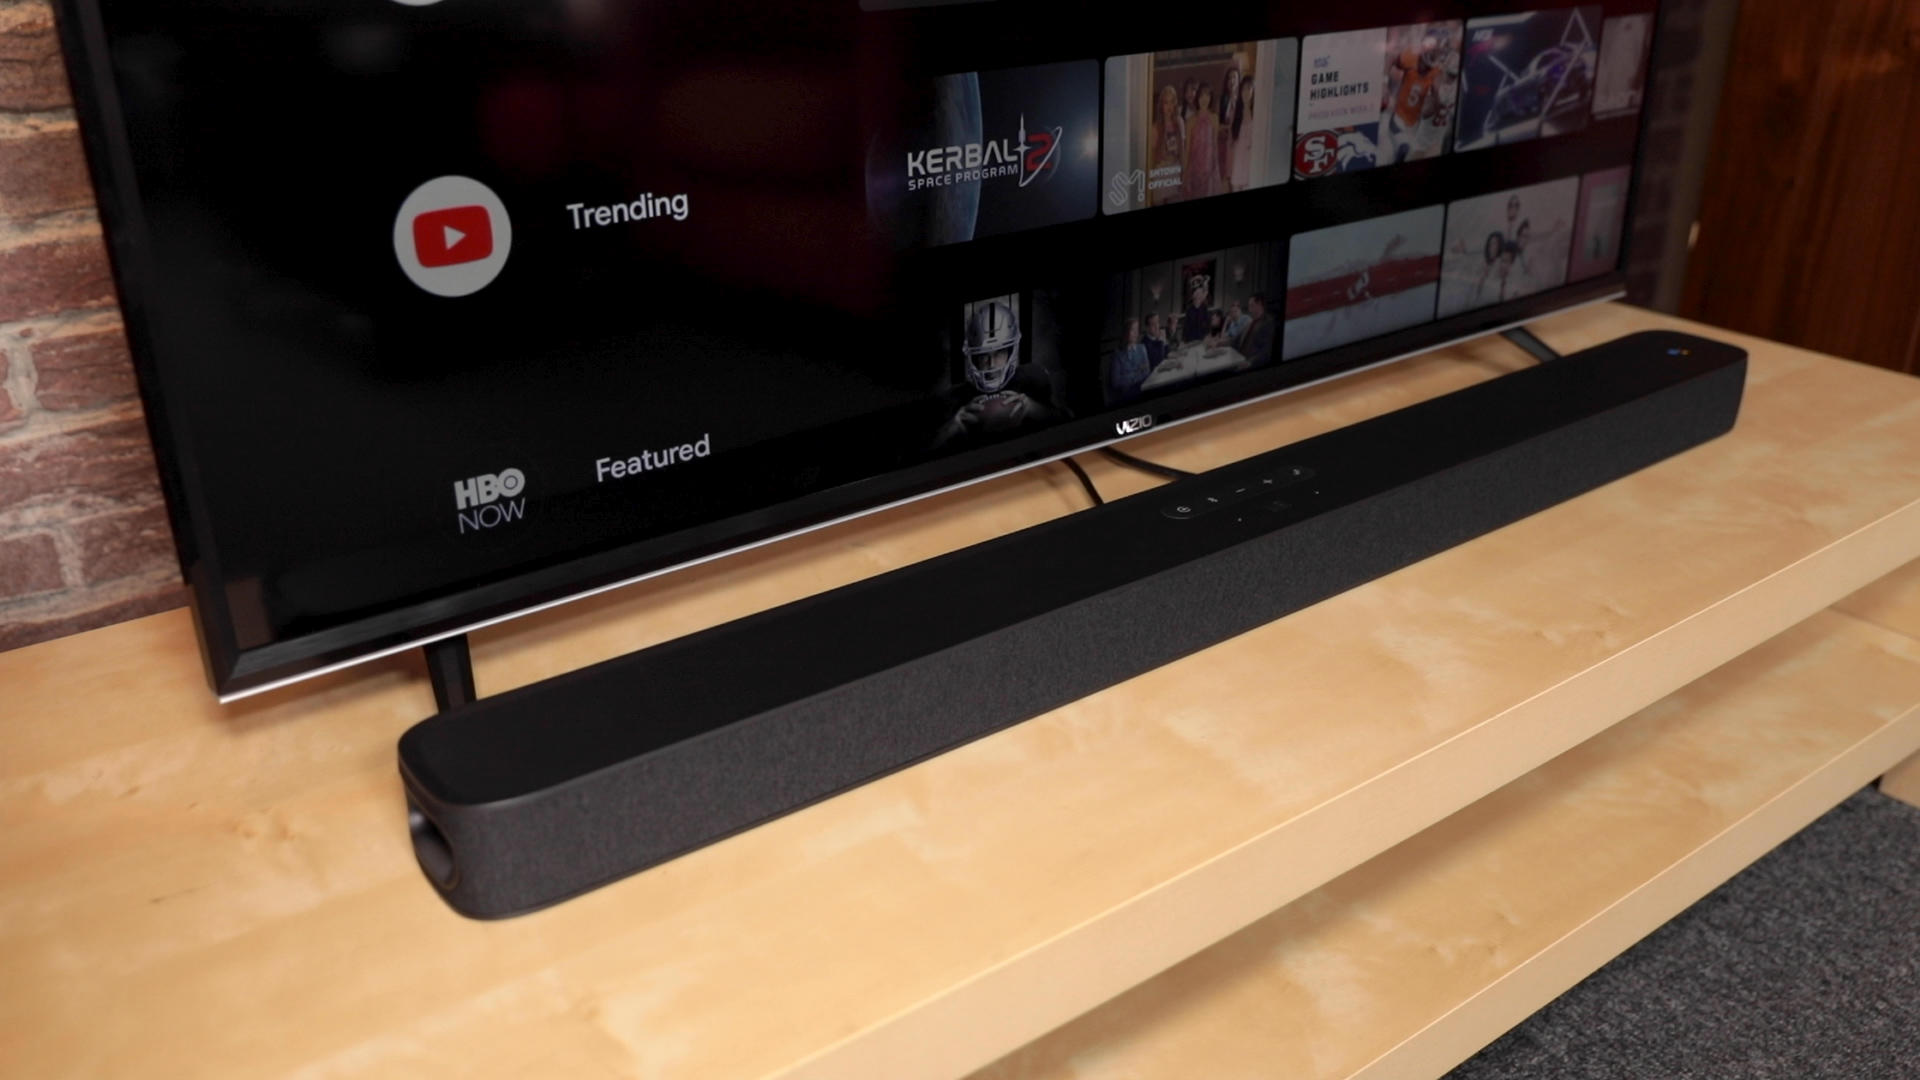 Video: JBL's Android TV sound bar sounds good, still needs work